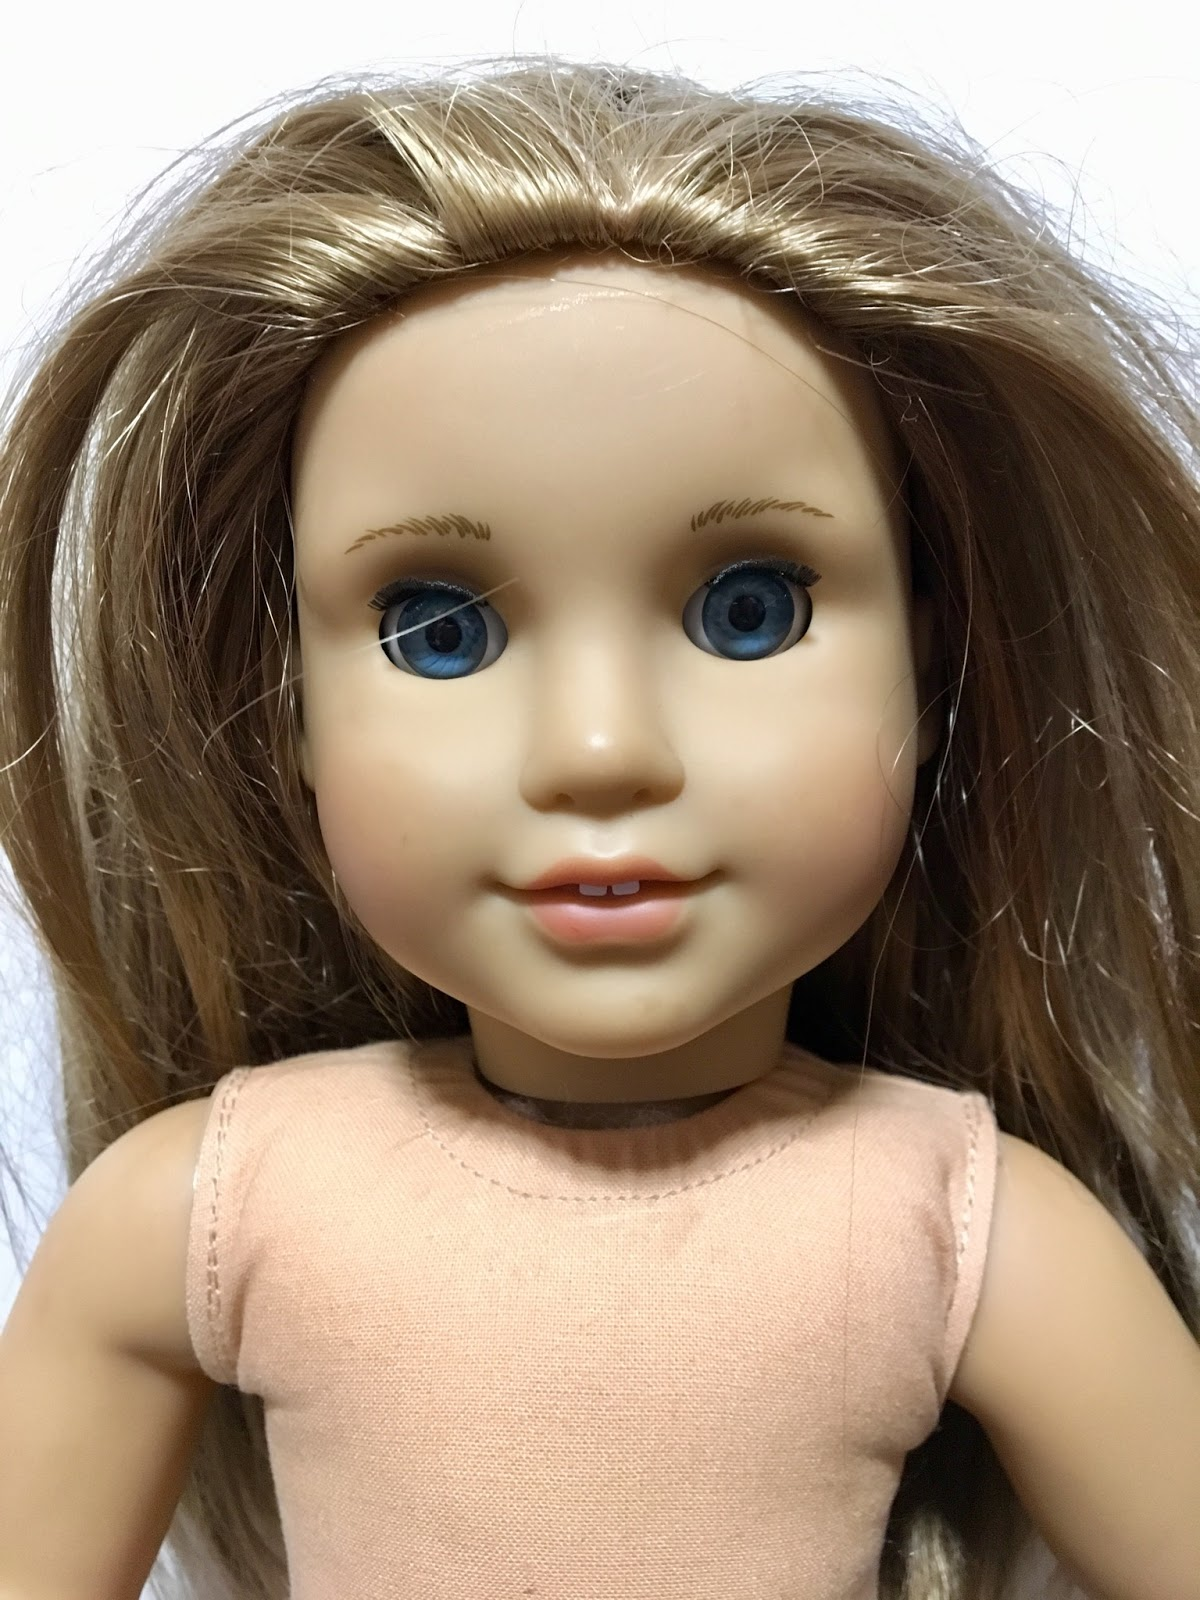 How to Fix an American Girl Doll How to Fix an American Girl Doll new photo